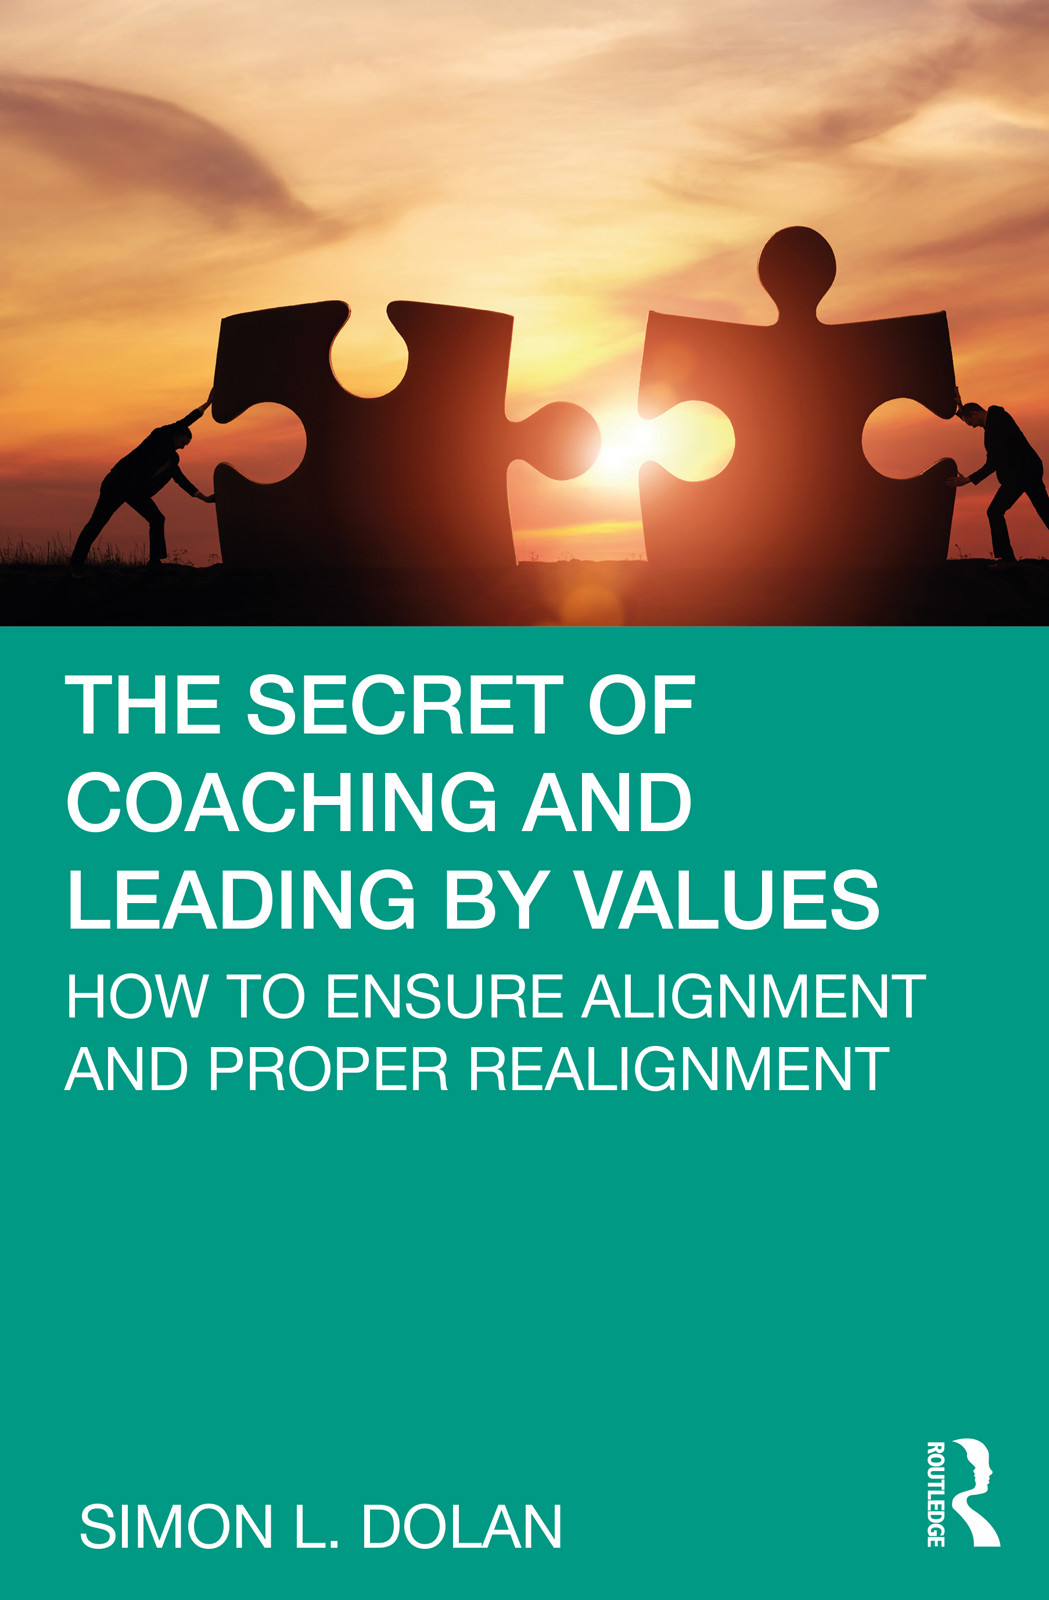 The Secret of Coaching and Leading by Values